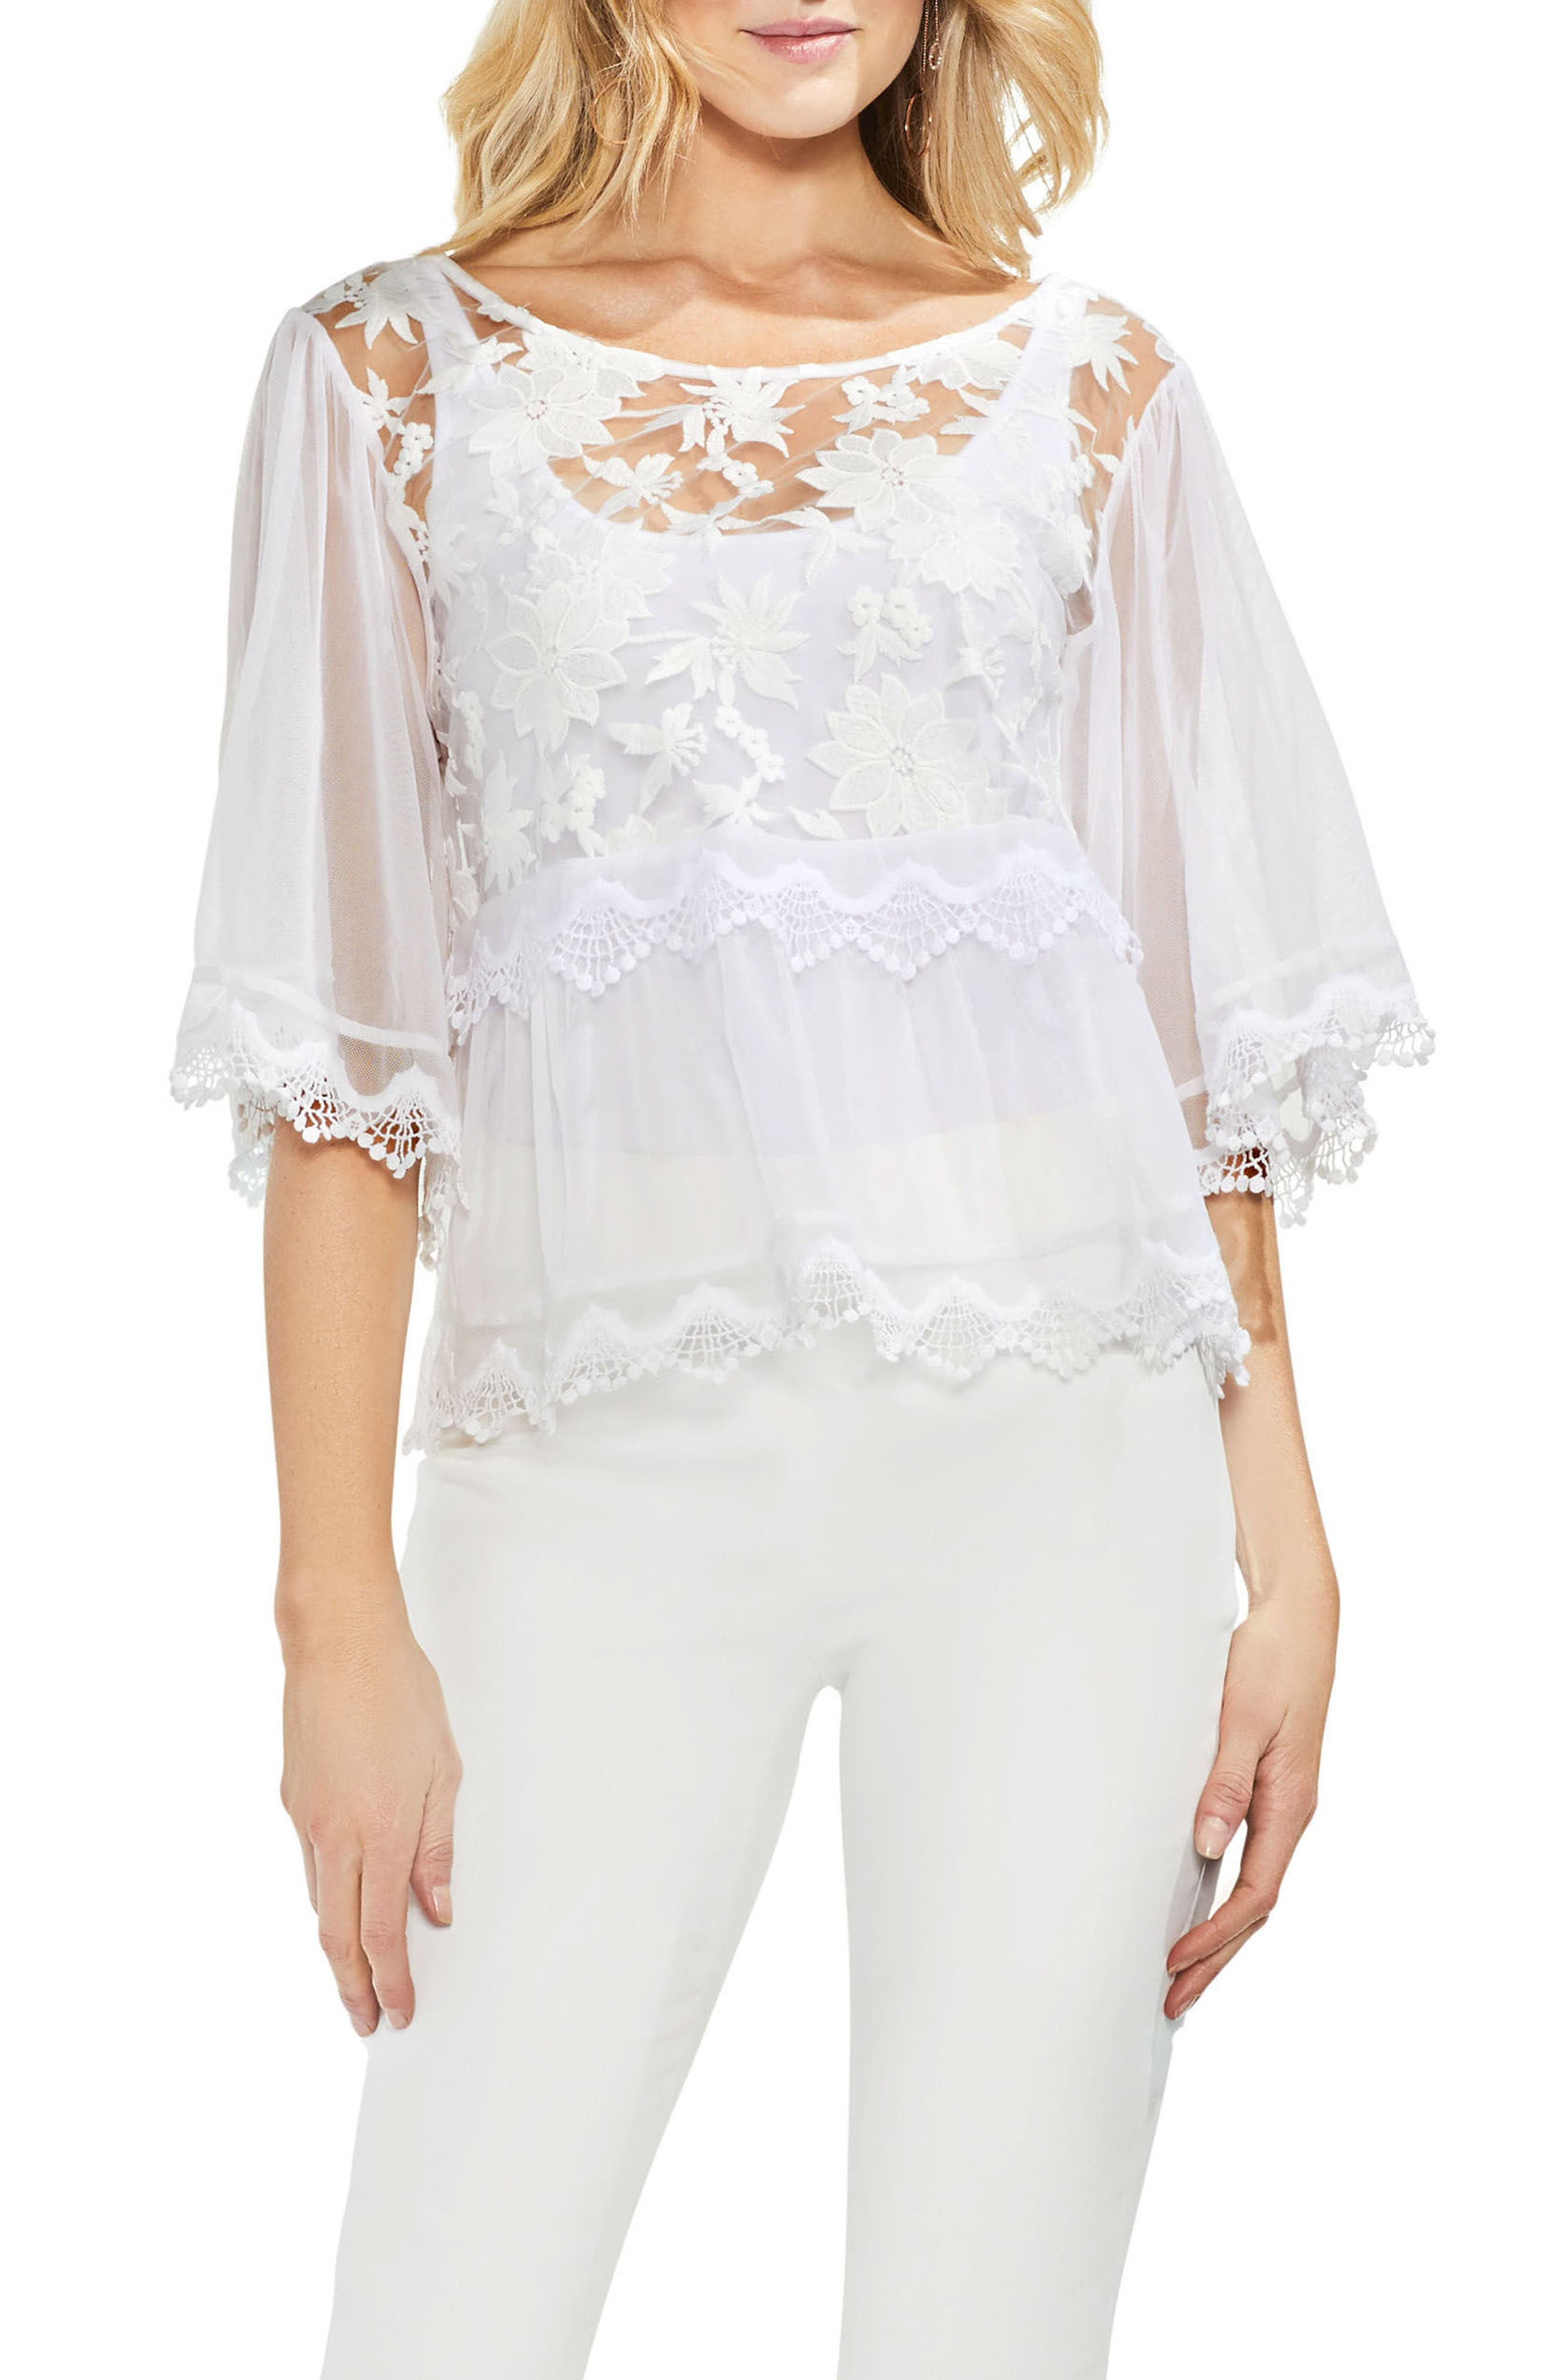 Alternate Image 1 Selected - Vince Camuto Bell Sleeve Embroidered Mesh Top